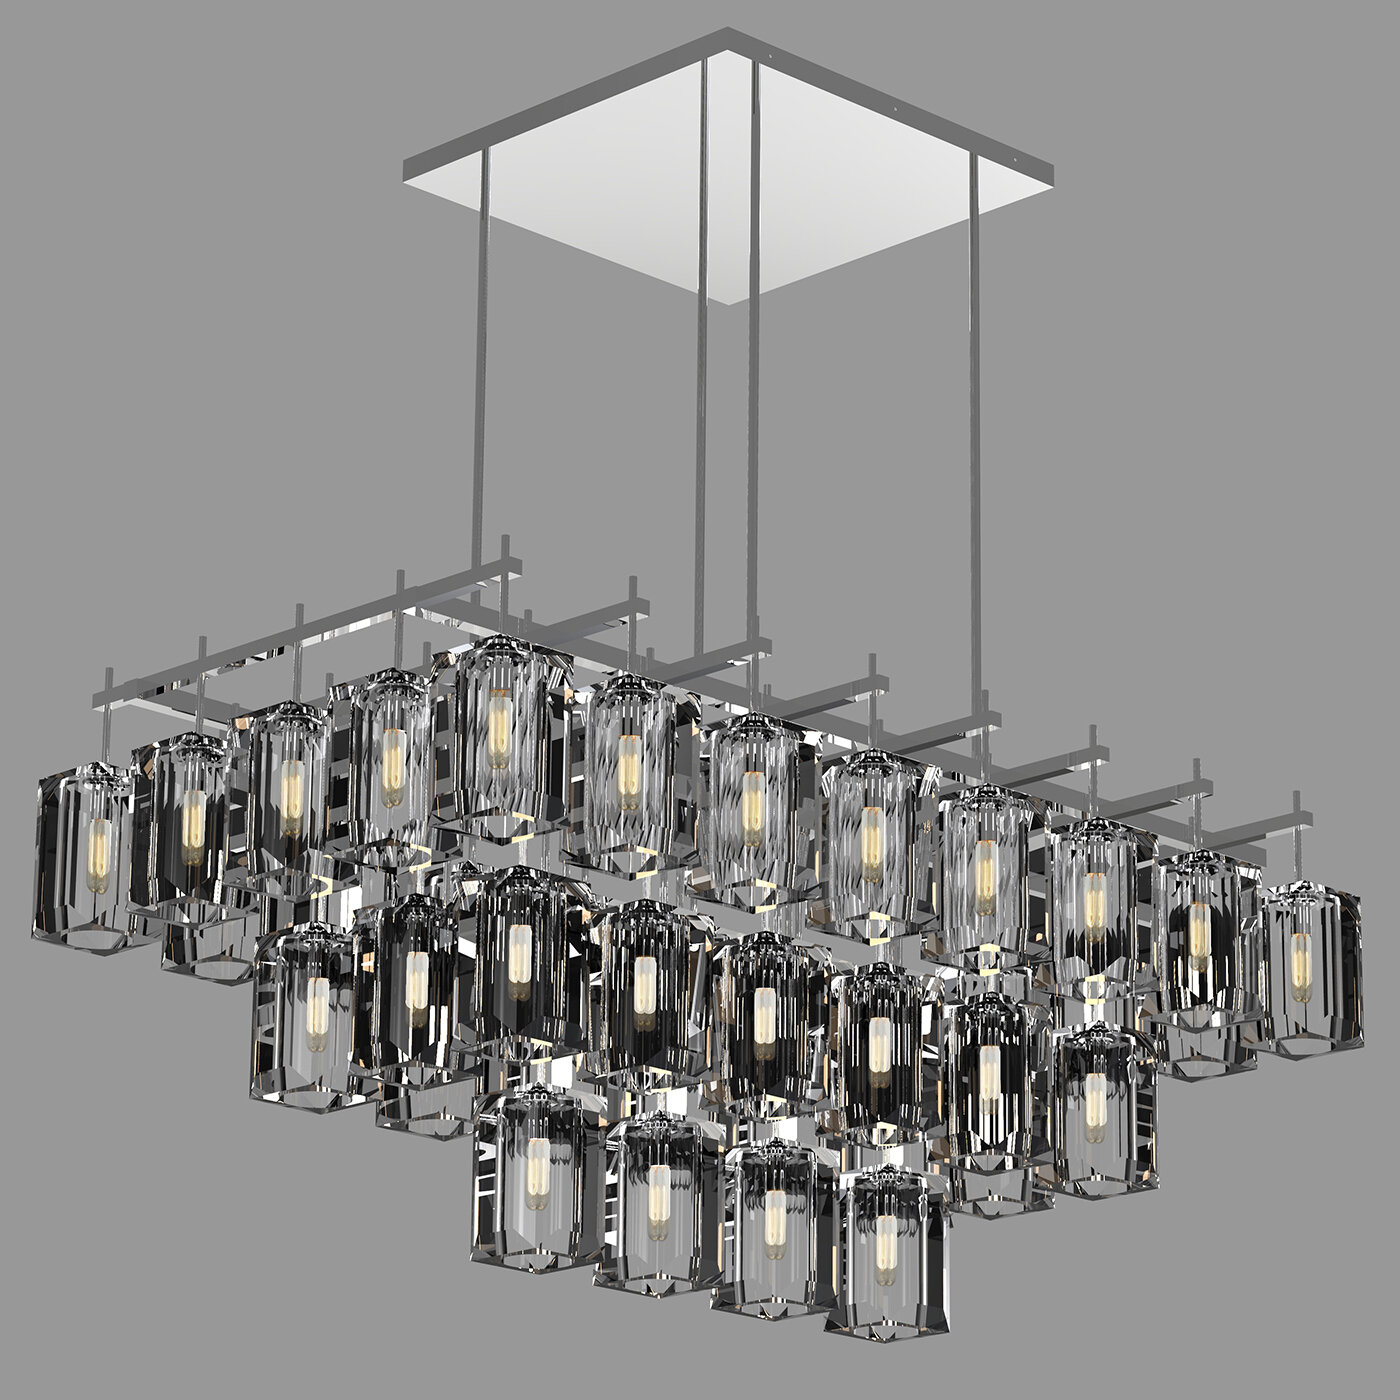 Fine art lamps monceau 40 light square rectangle chandelier wayfair